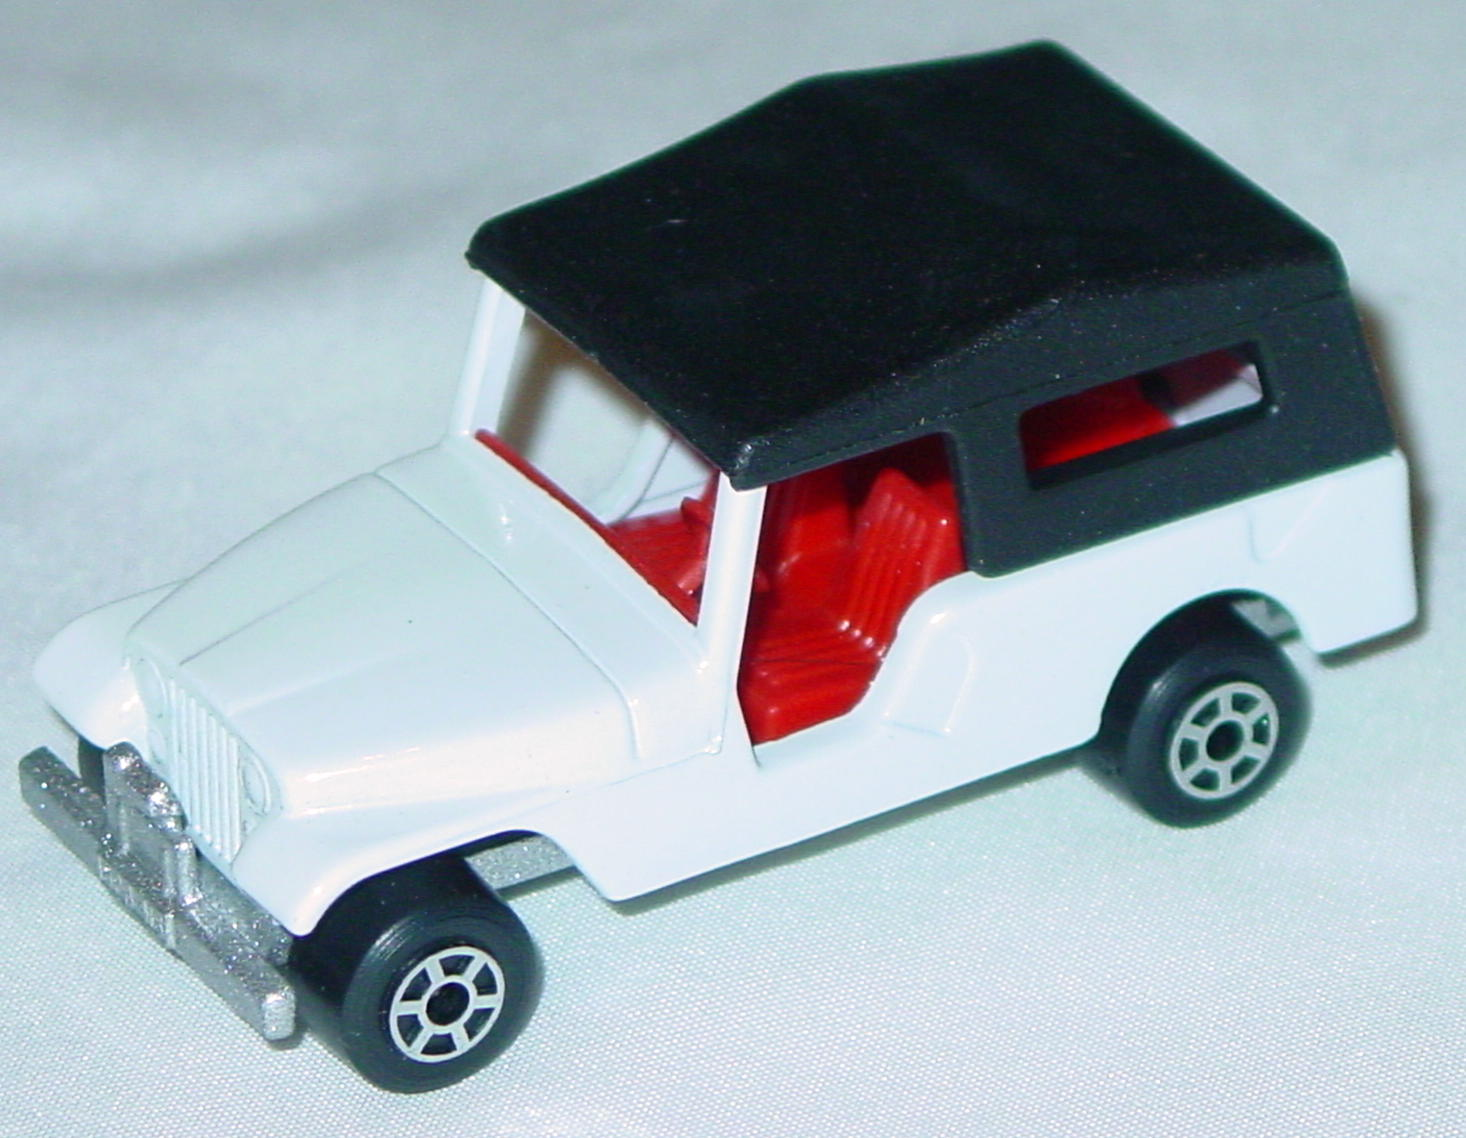 Hungarian 53 C 13 - CJ6 Jeep White red interior black roof met sil-grey 5-spoke